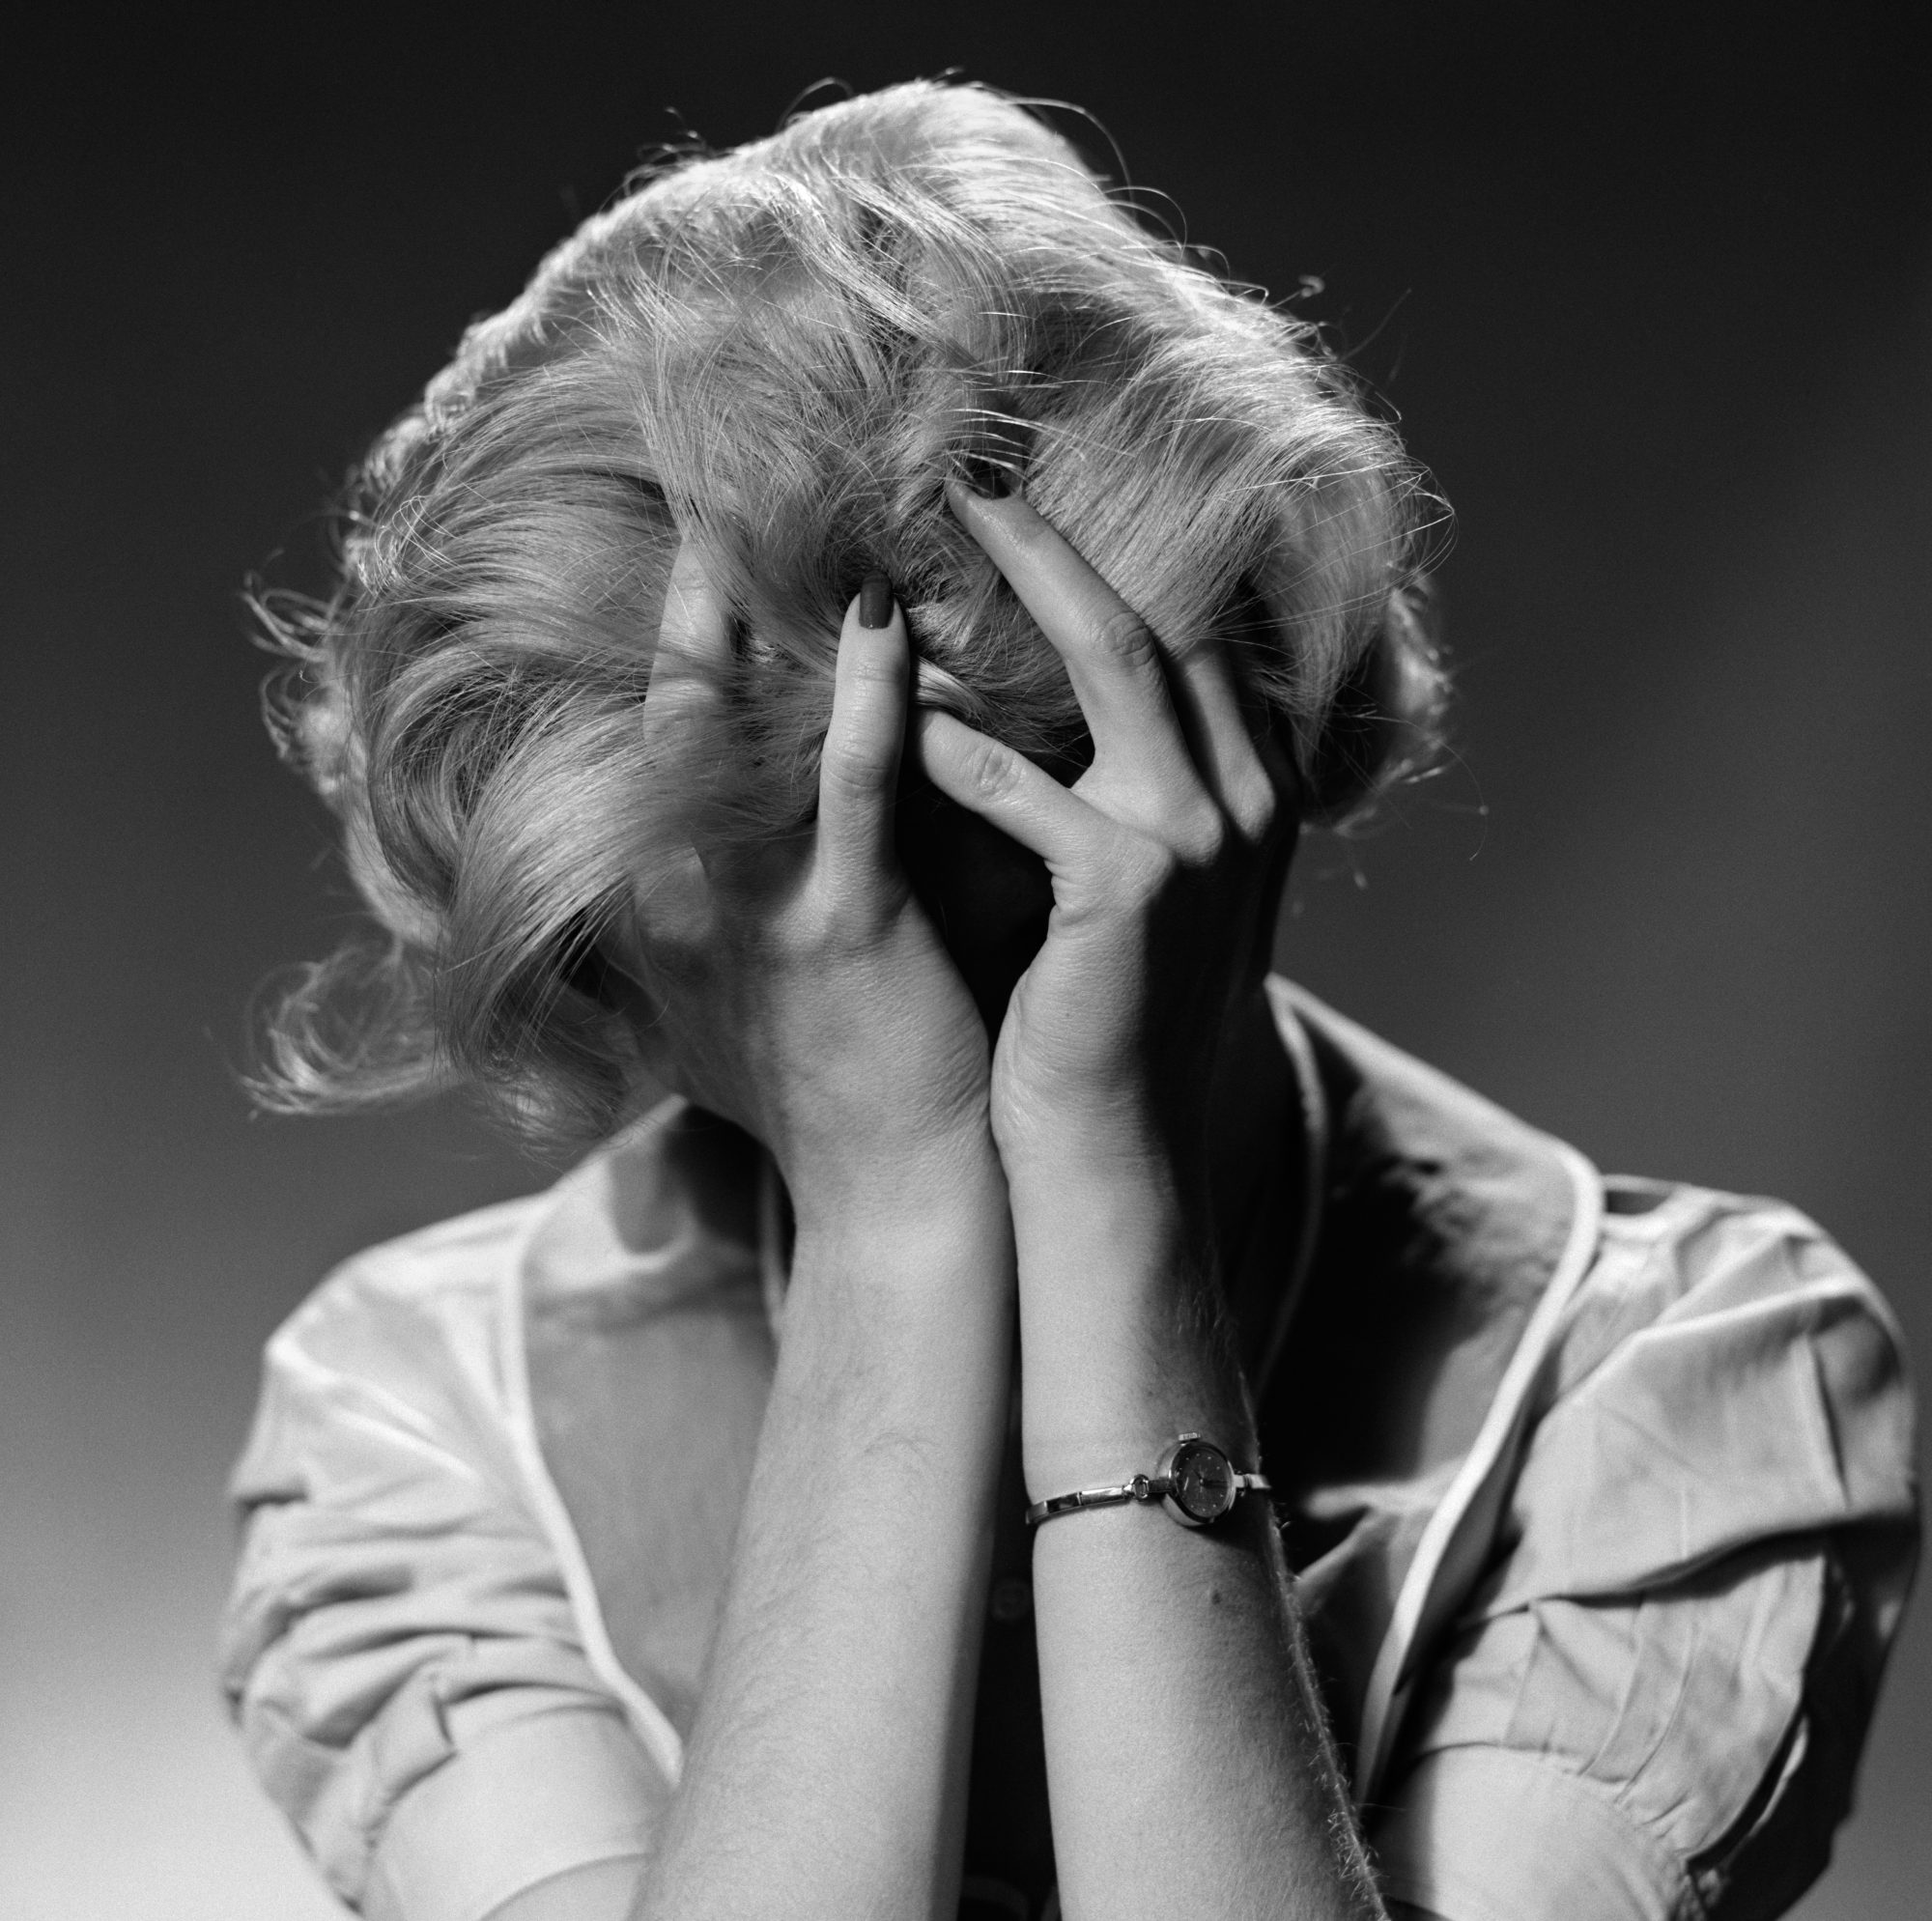 Image of frazzled woman